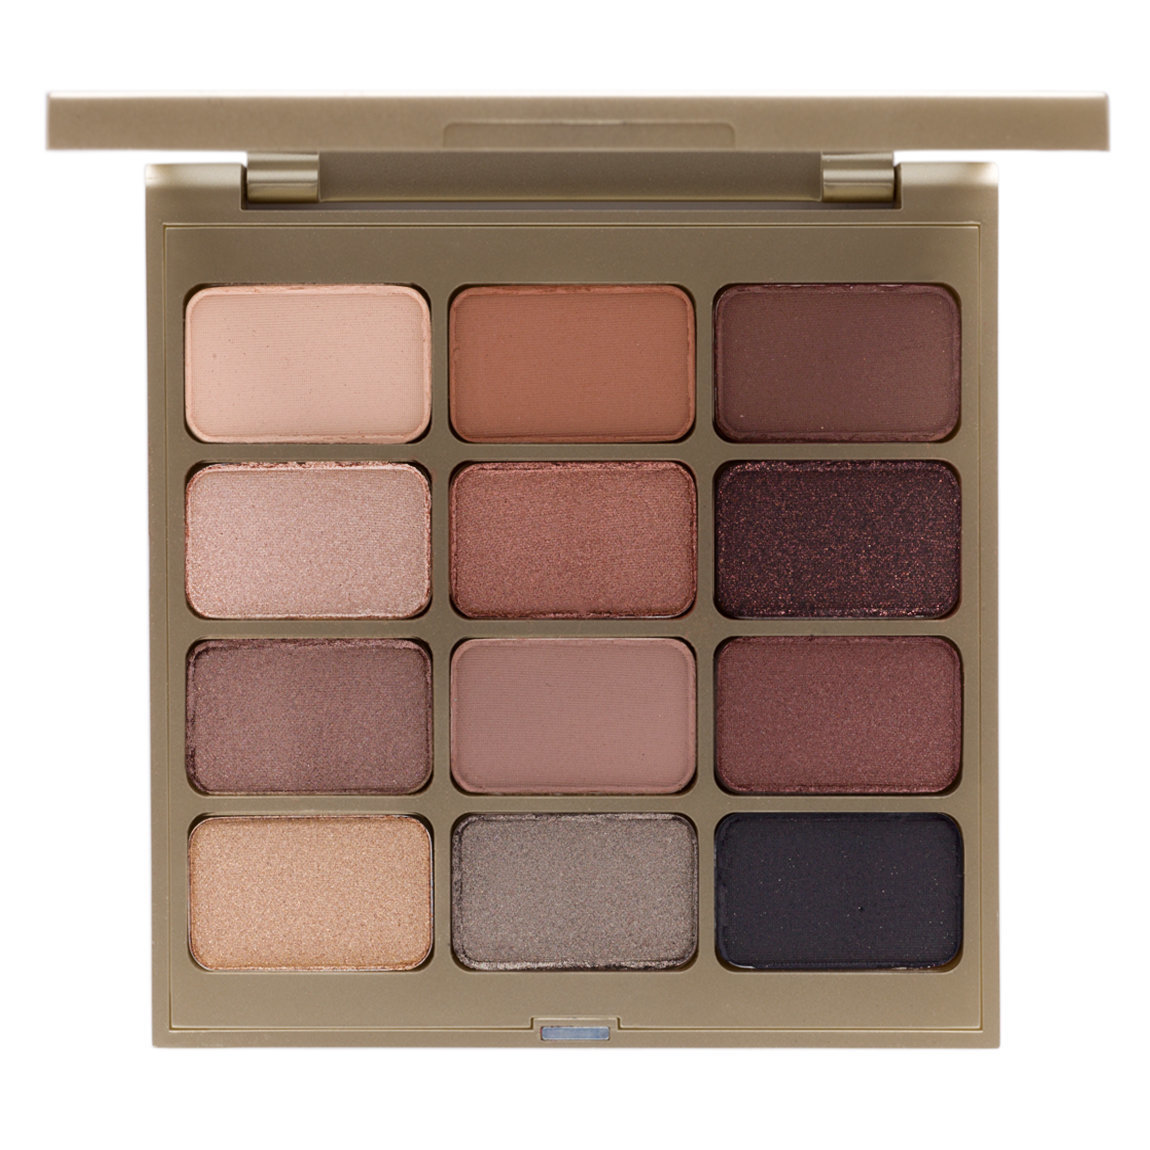 Stila Eyes Are The Window Shadow Palette Soul product swatch.